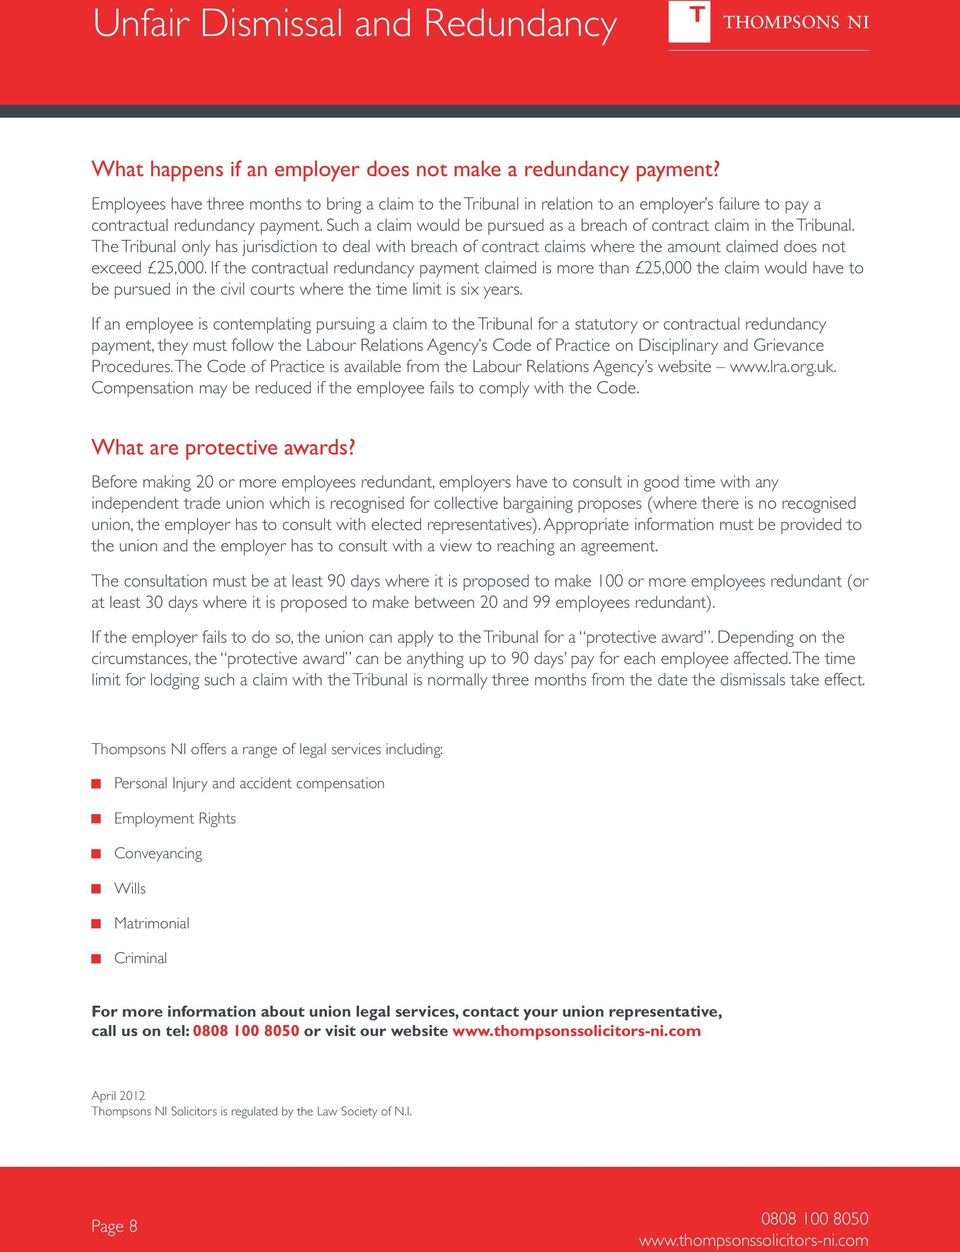 Such a claim would be pursued as a breach of contract claim in the Tribunal. The Tribunal only has jurisdiction to deal with breach of contract claims where the amount claimed does not exceed 5,000.